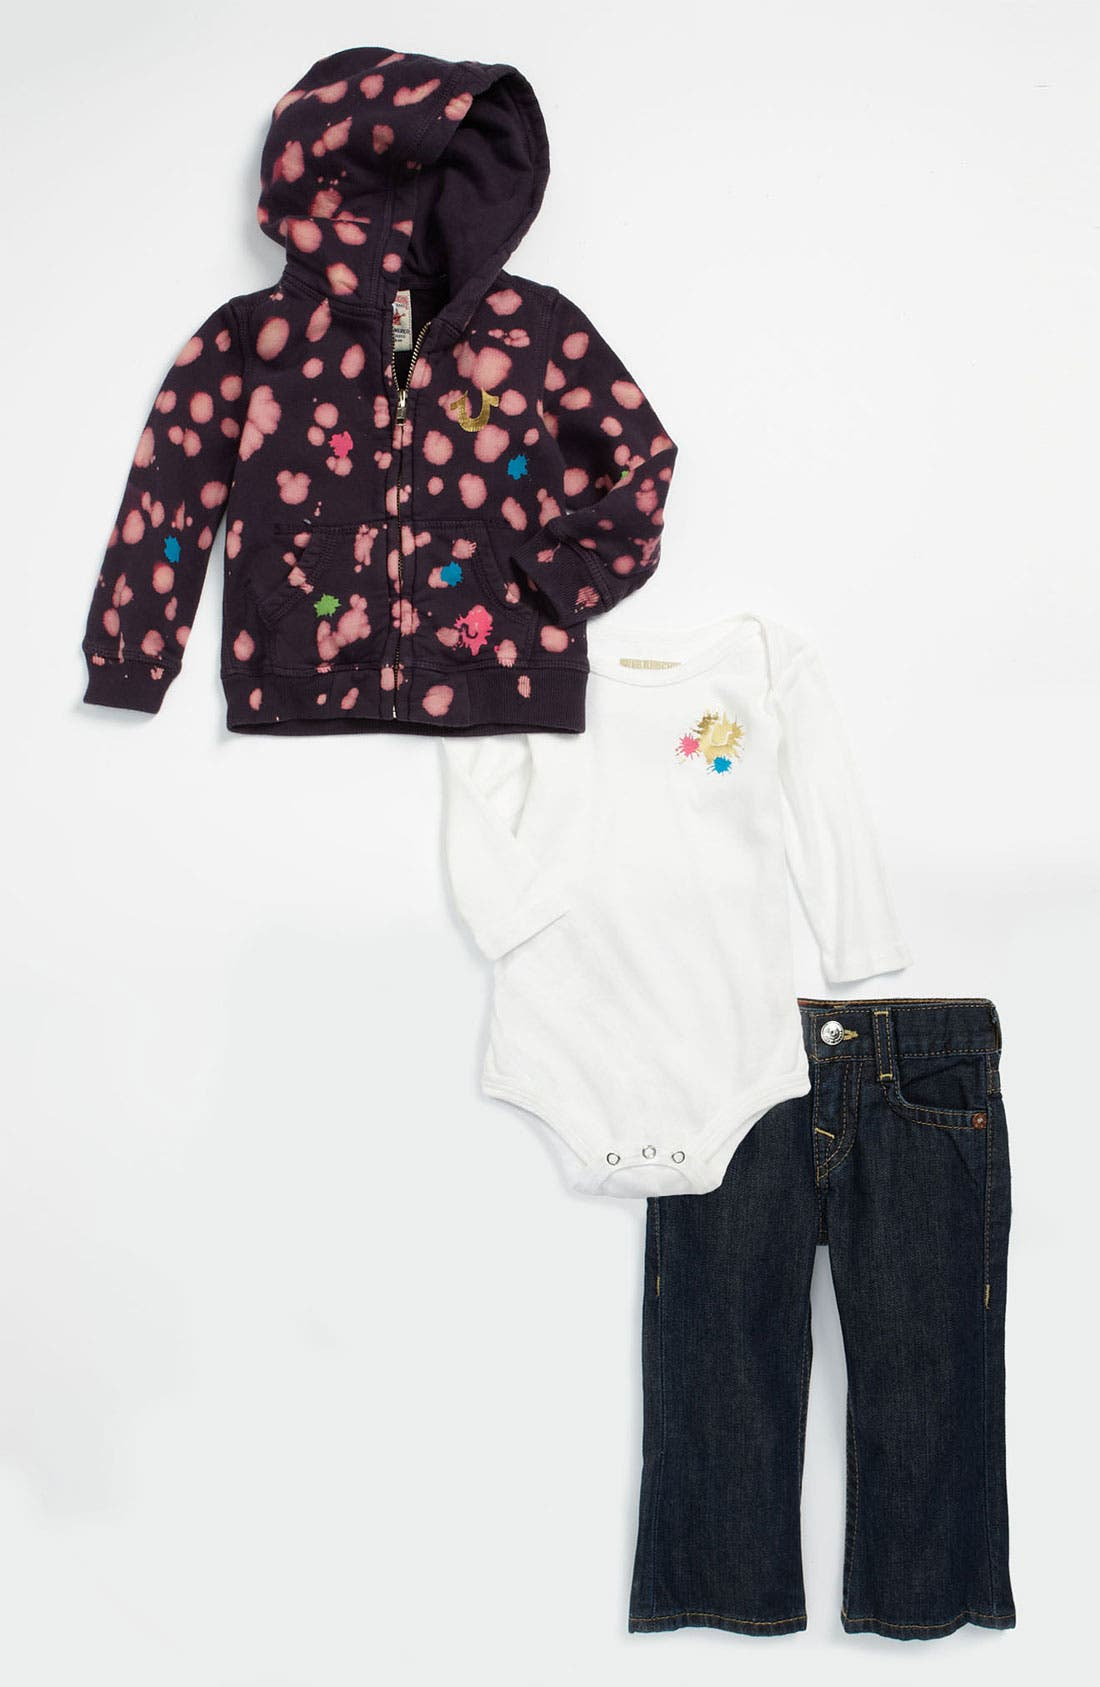 Main Image - True Religion Brand Jeans Bodysuit, Jeans & Hoodie Gift Set (Infant)